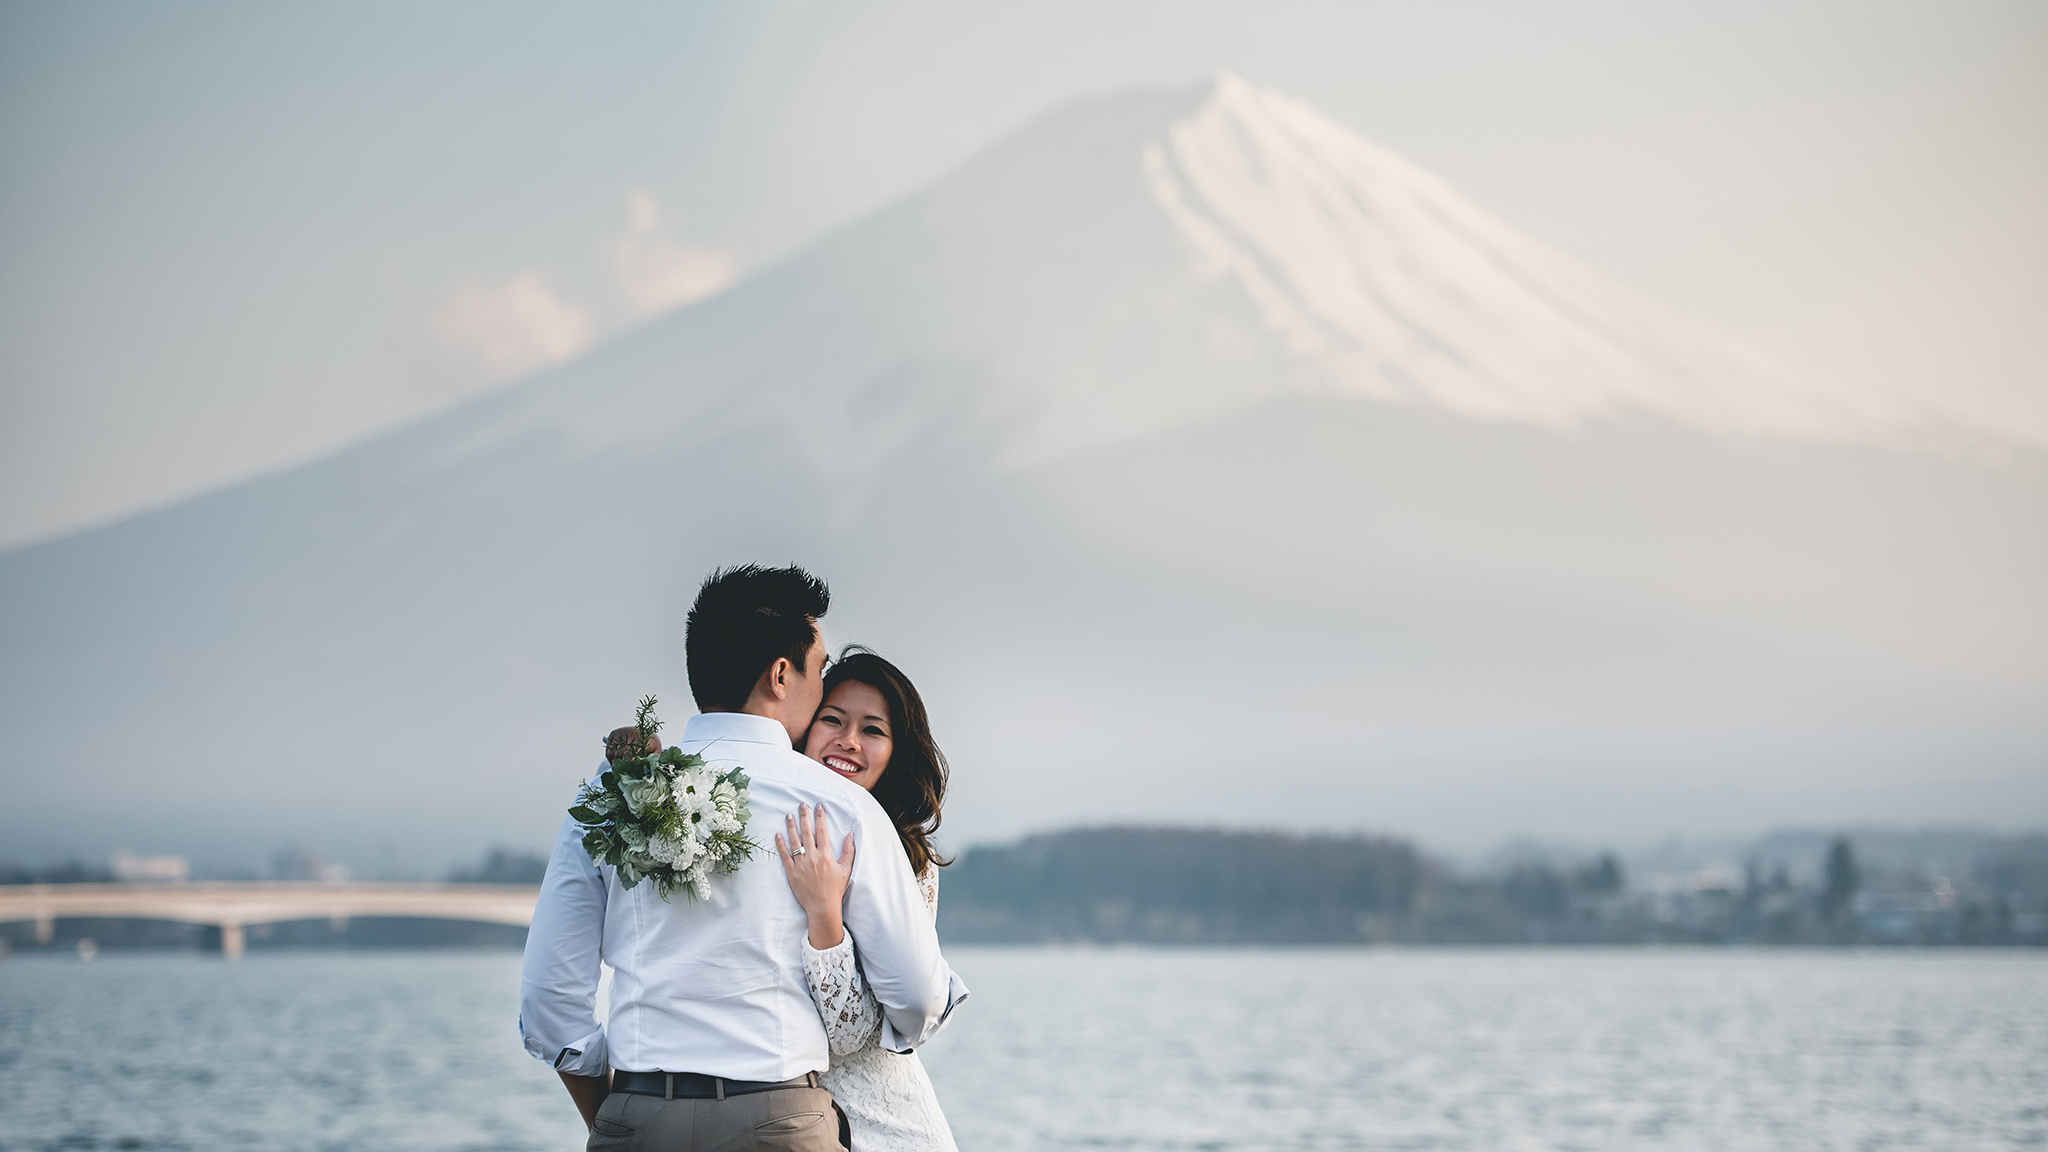 Japan Prewedding 42.JPG